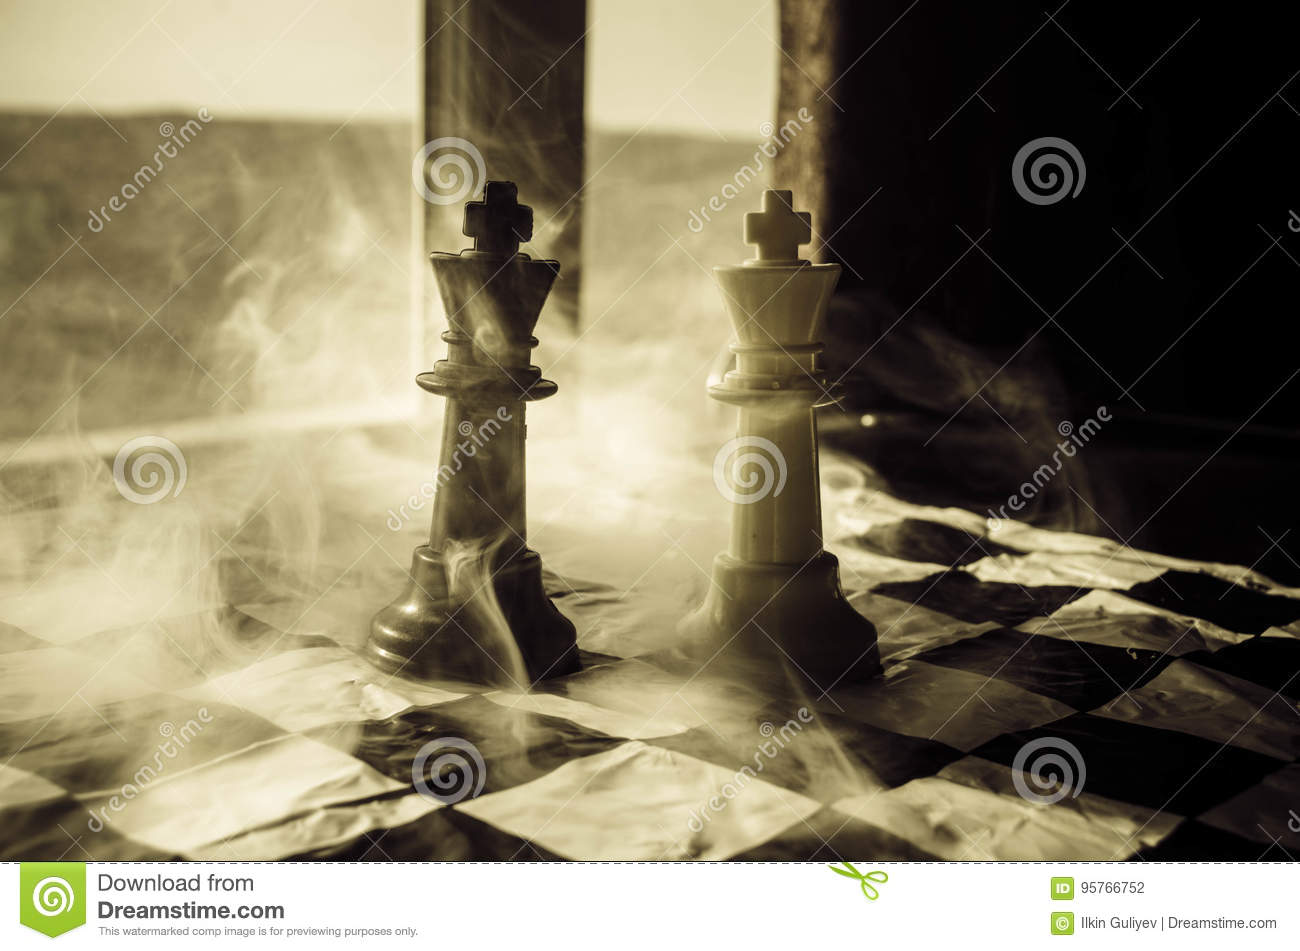 chess board game concept of business ideas and competition and strategy ideas concep. Chess figures on a dark background with smok